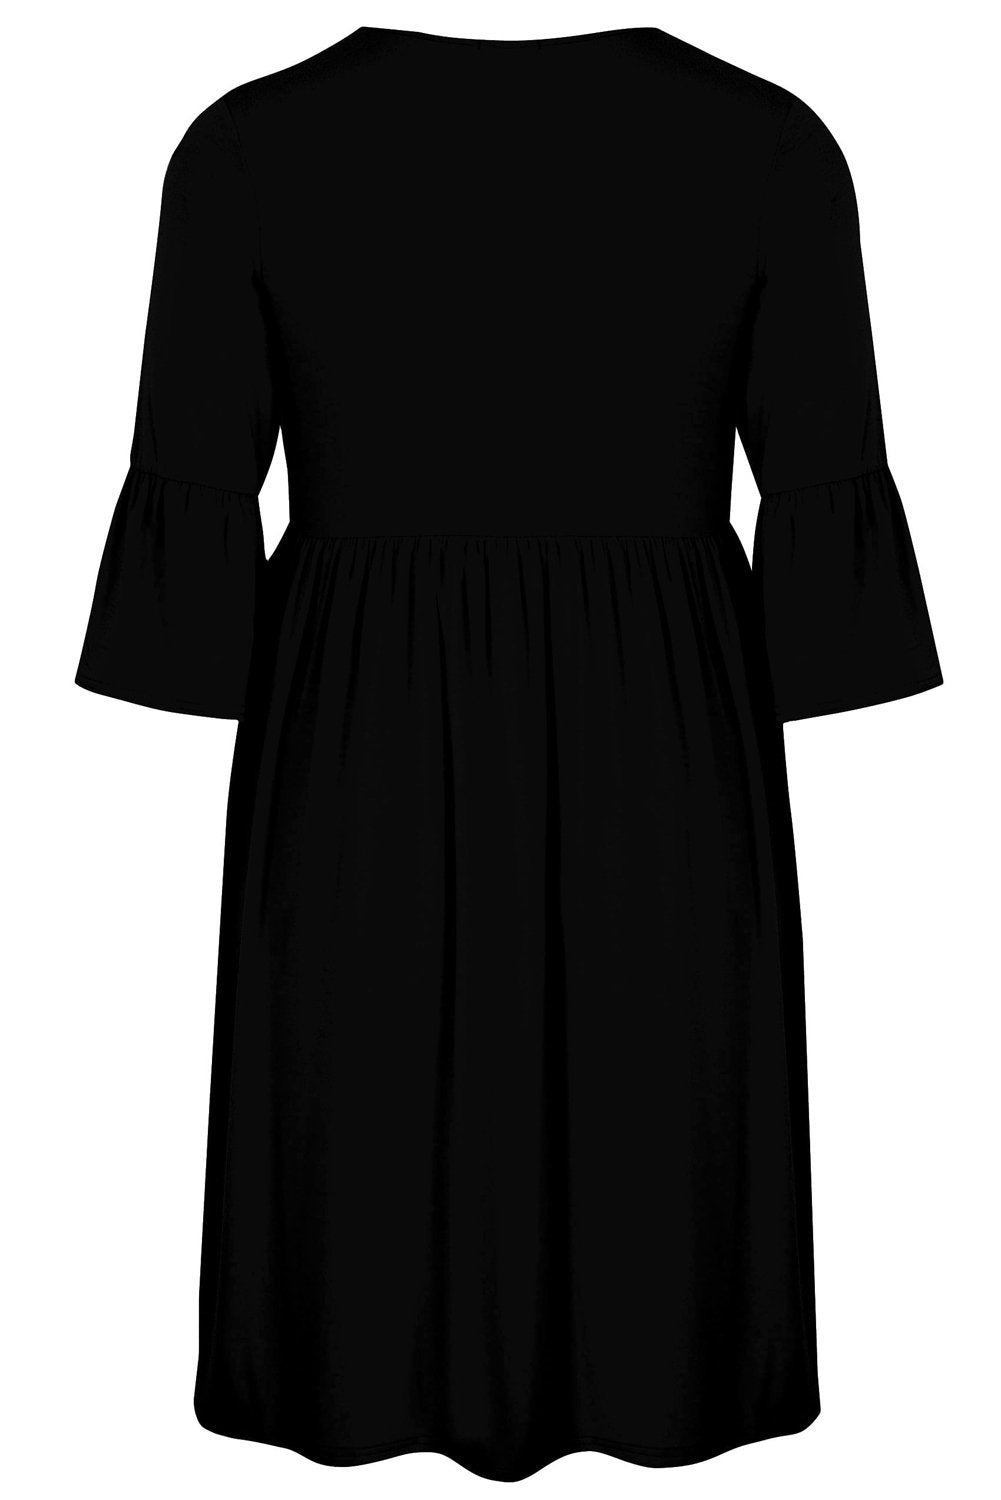 plus size Long Sleeve Dress XL / AUS 18 - 20 / Black Isabella Flute Sleeve Dress